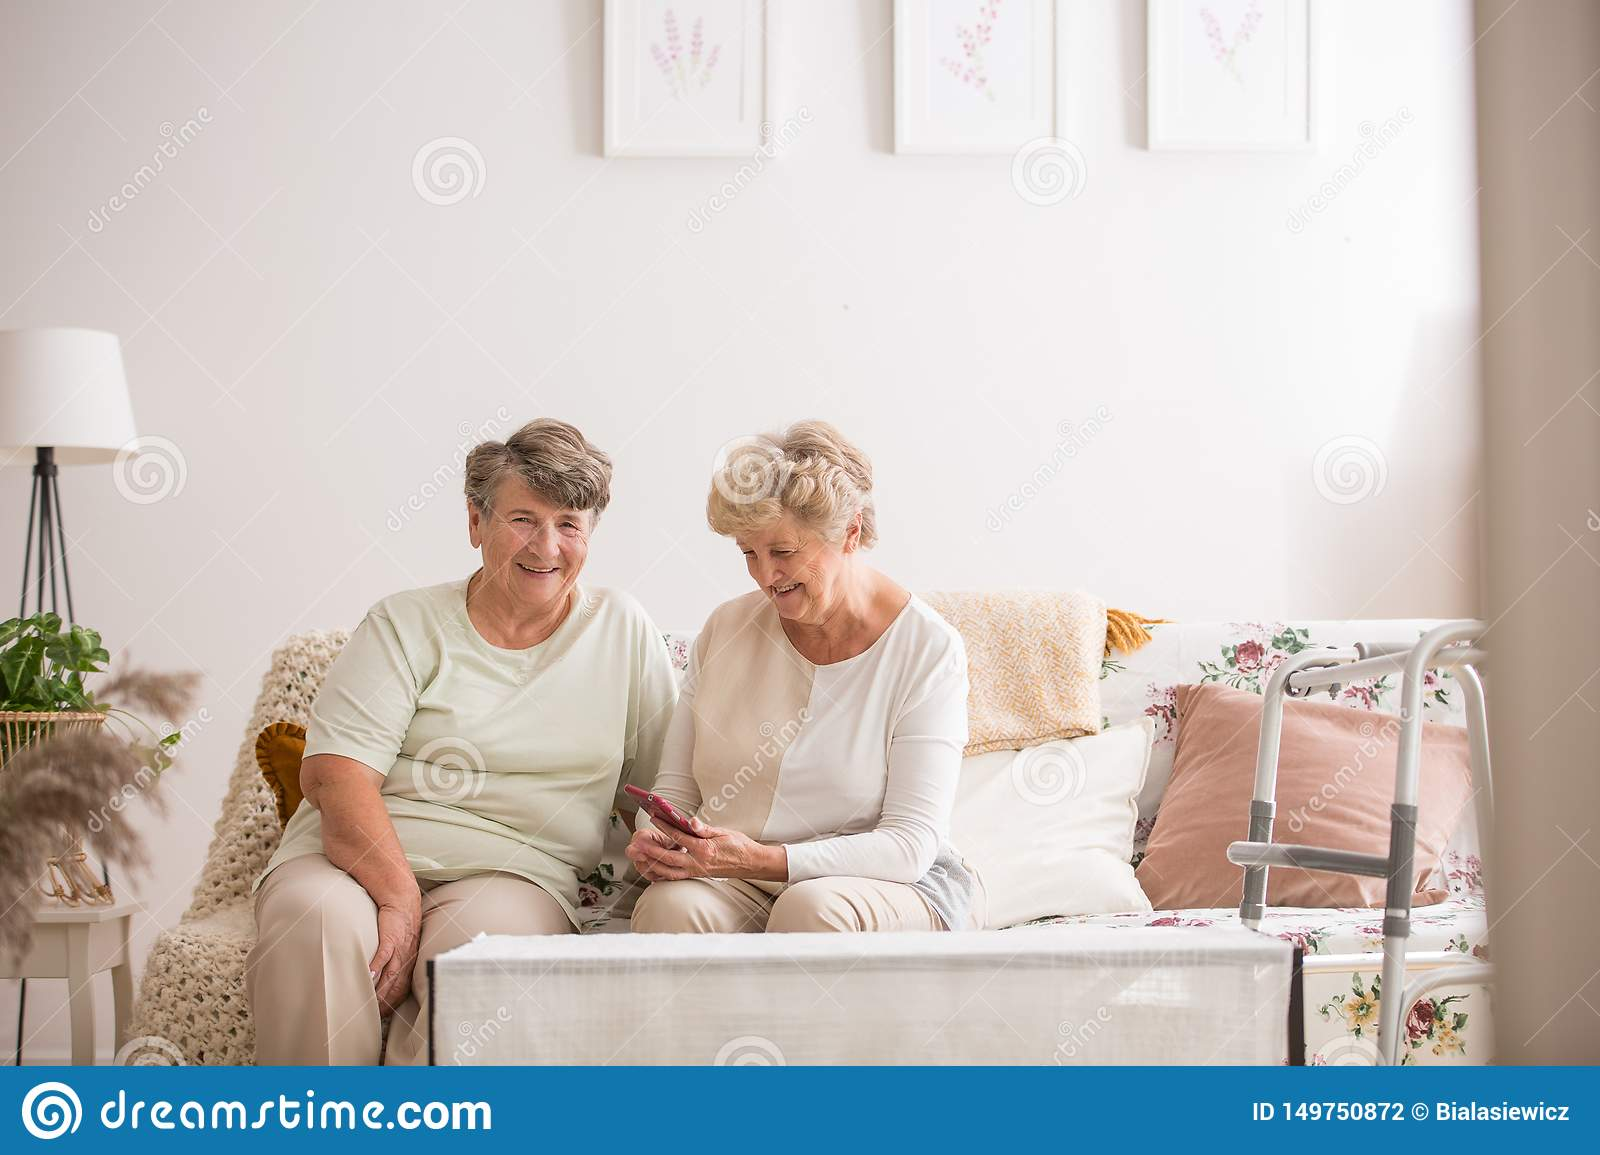 Two senior friends sitting together at couch